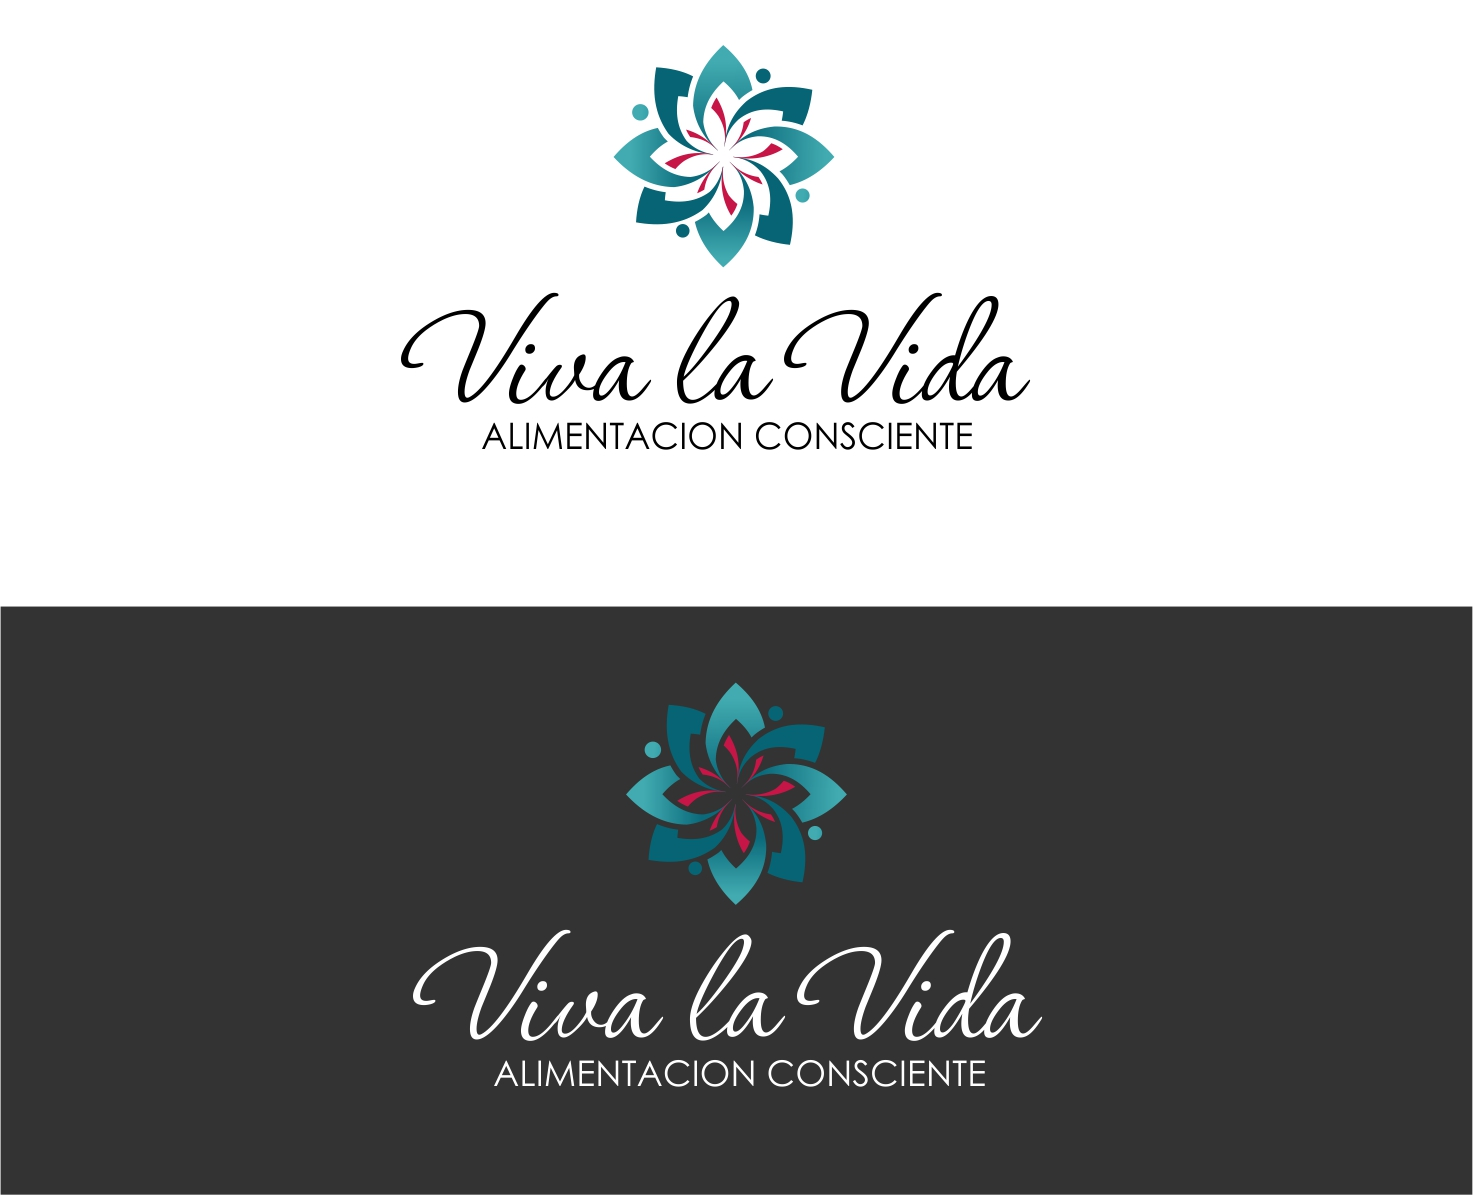 serious traditional logo design for viva la vida by andutza design 6415317. Black Bedroom Furniture Sets. Home Design Ideas